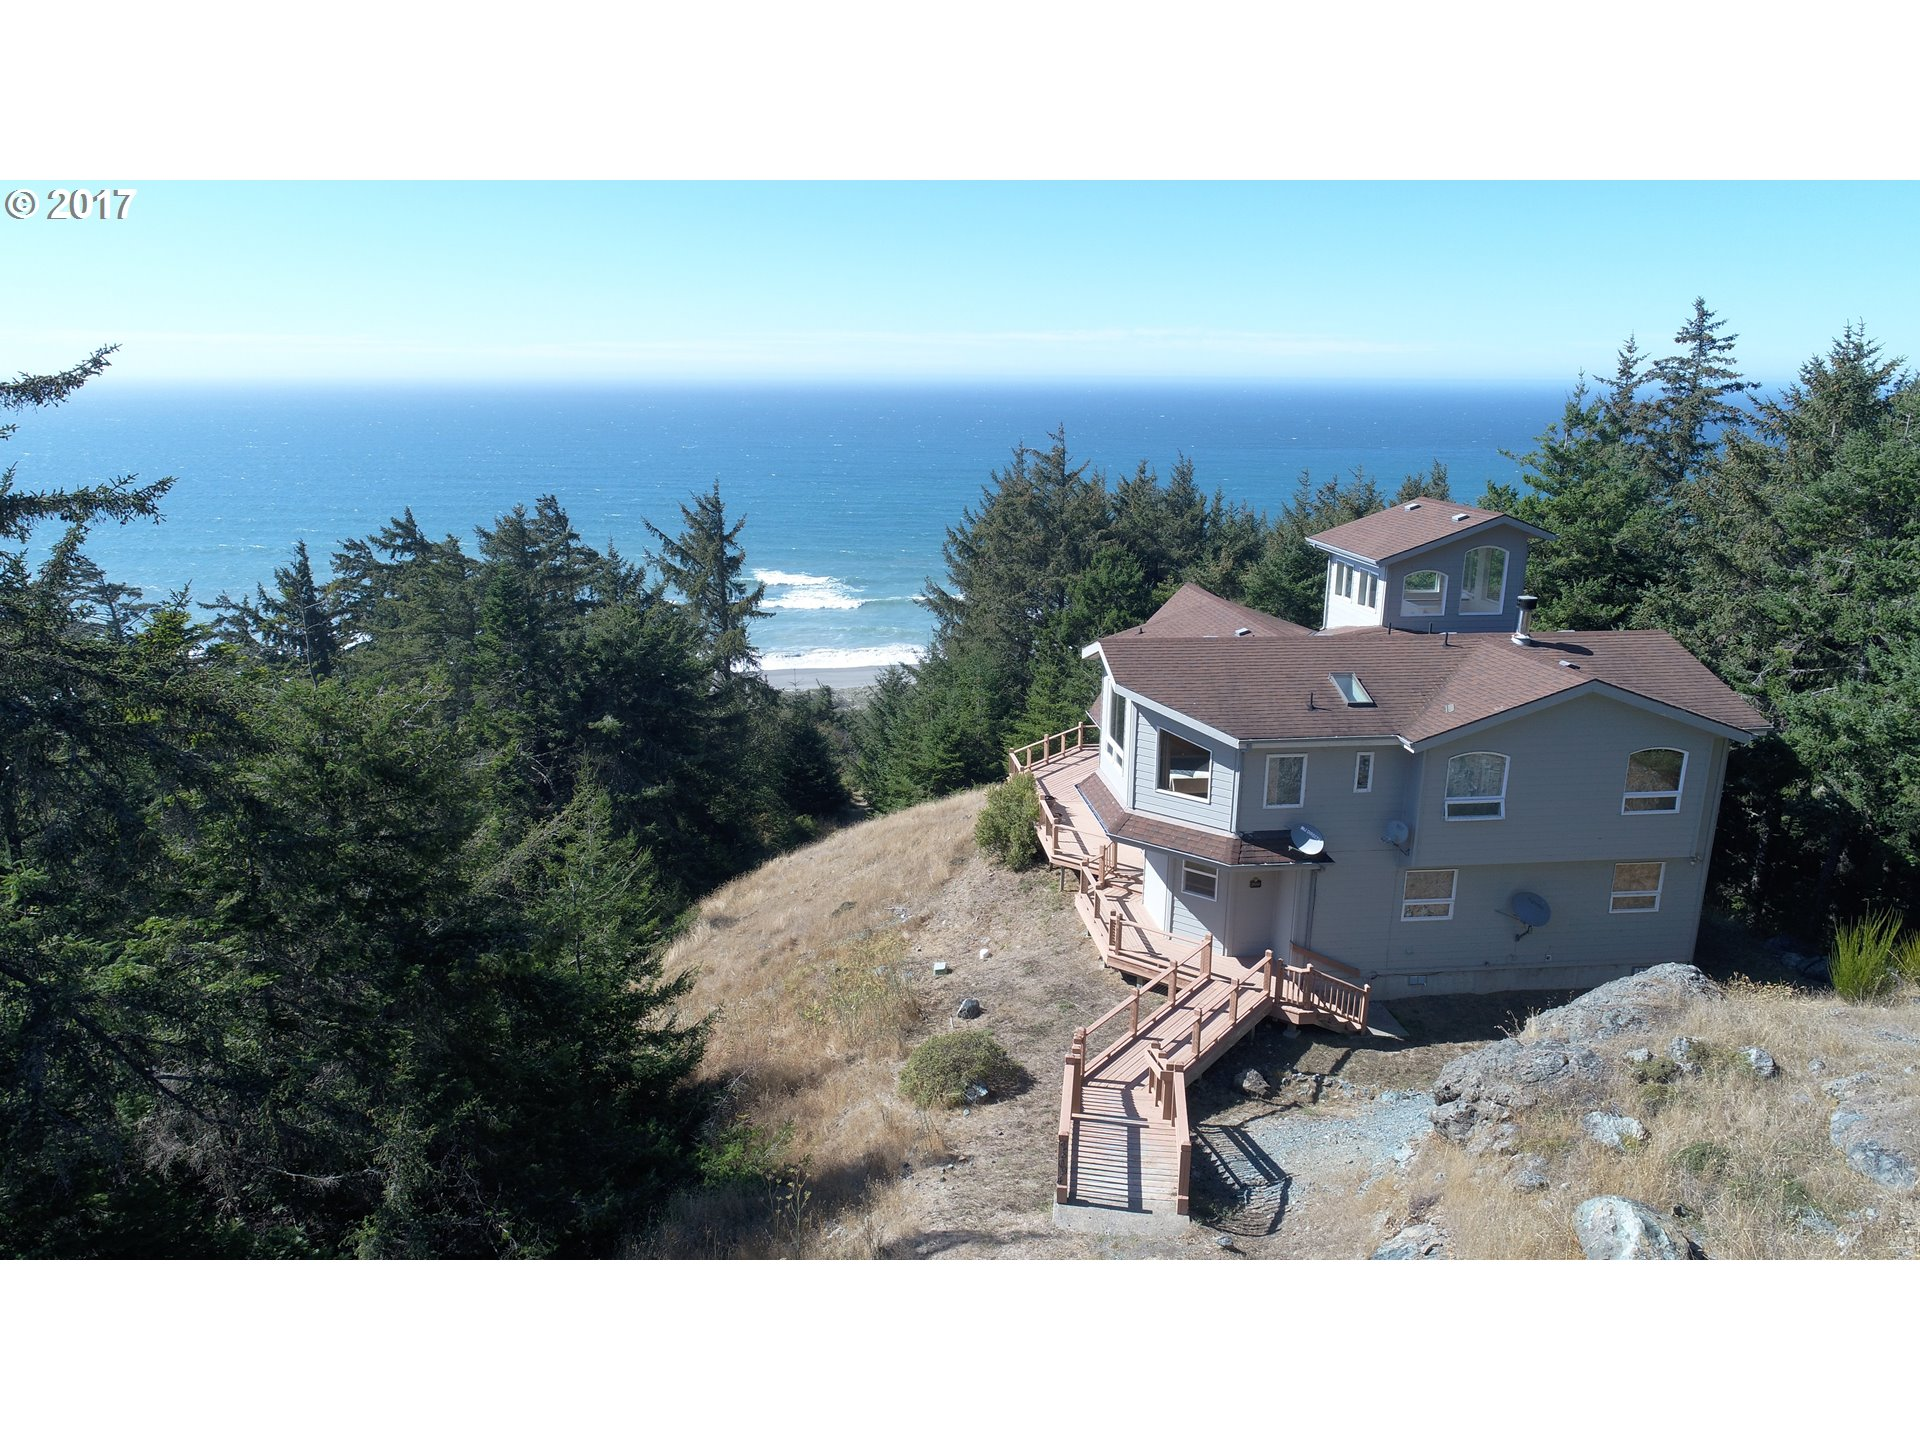 28094 HWY 101 Gold Beach, Brookings Home Listings - Pacific Coastal Real Estate